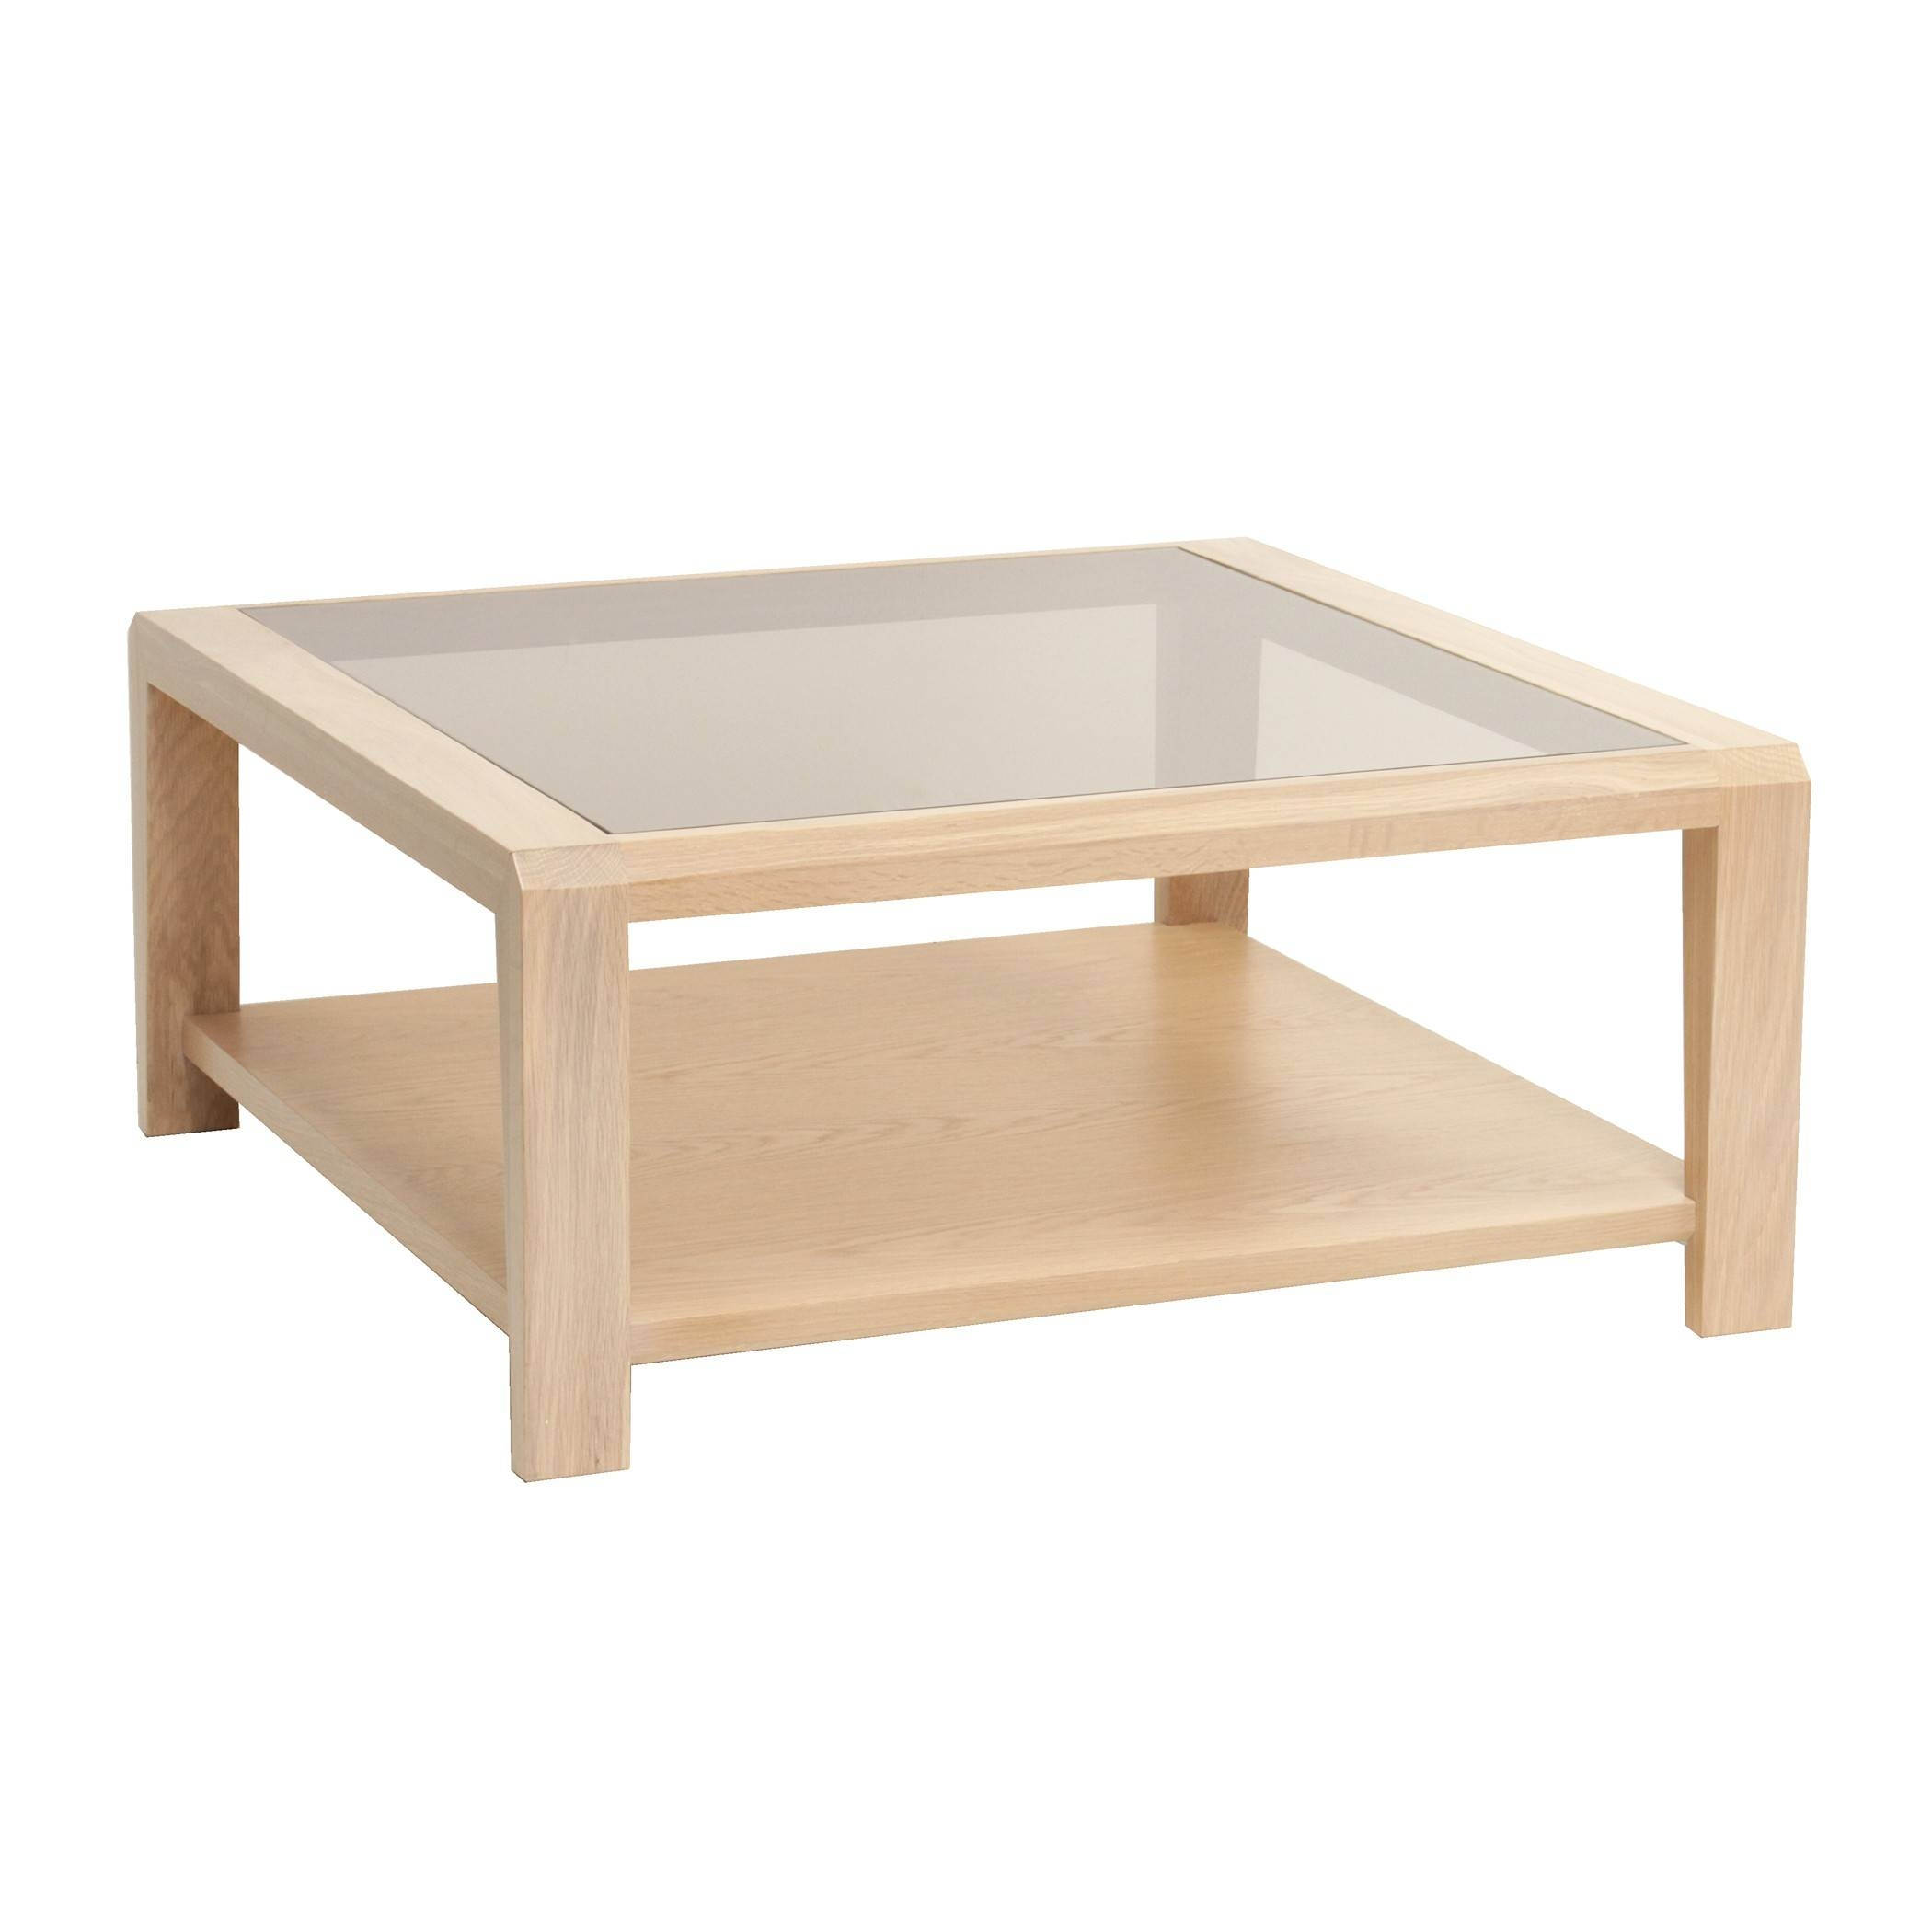 Trendy Glass Top Square Coffee Table – Irpmi in Square Oak Coffee Tables (Image 29 of 30)